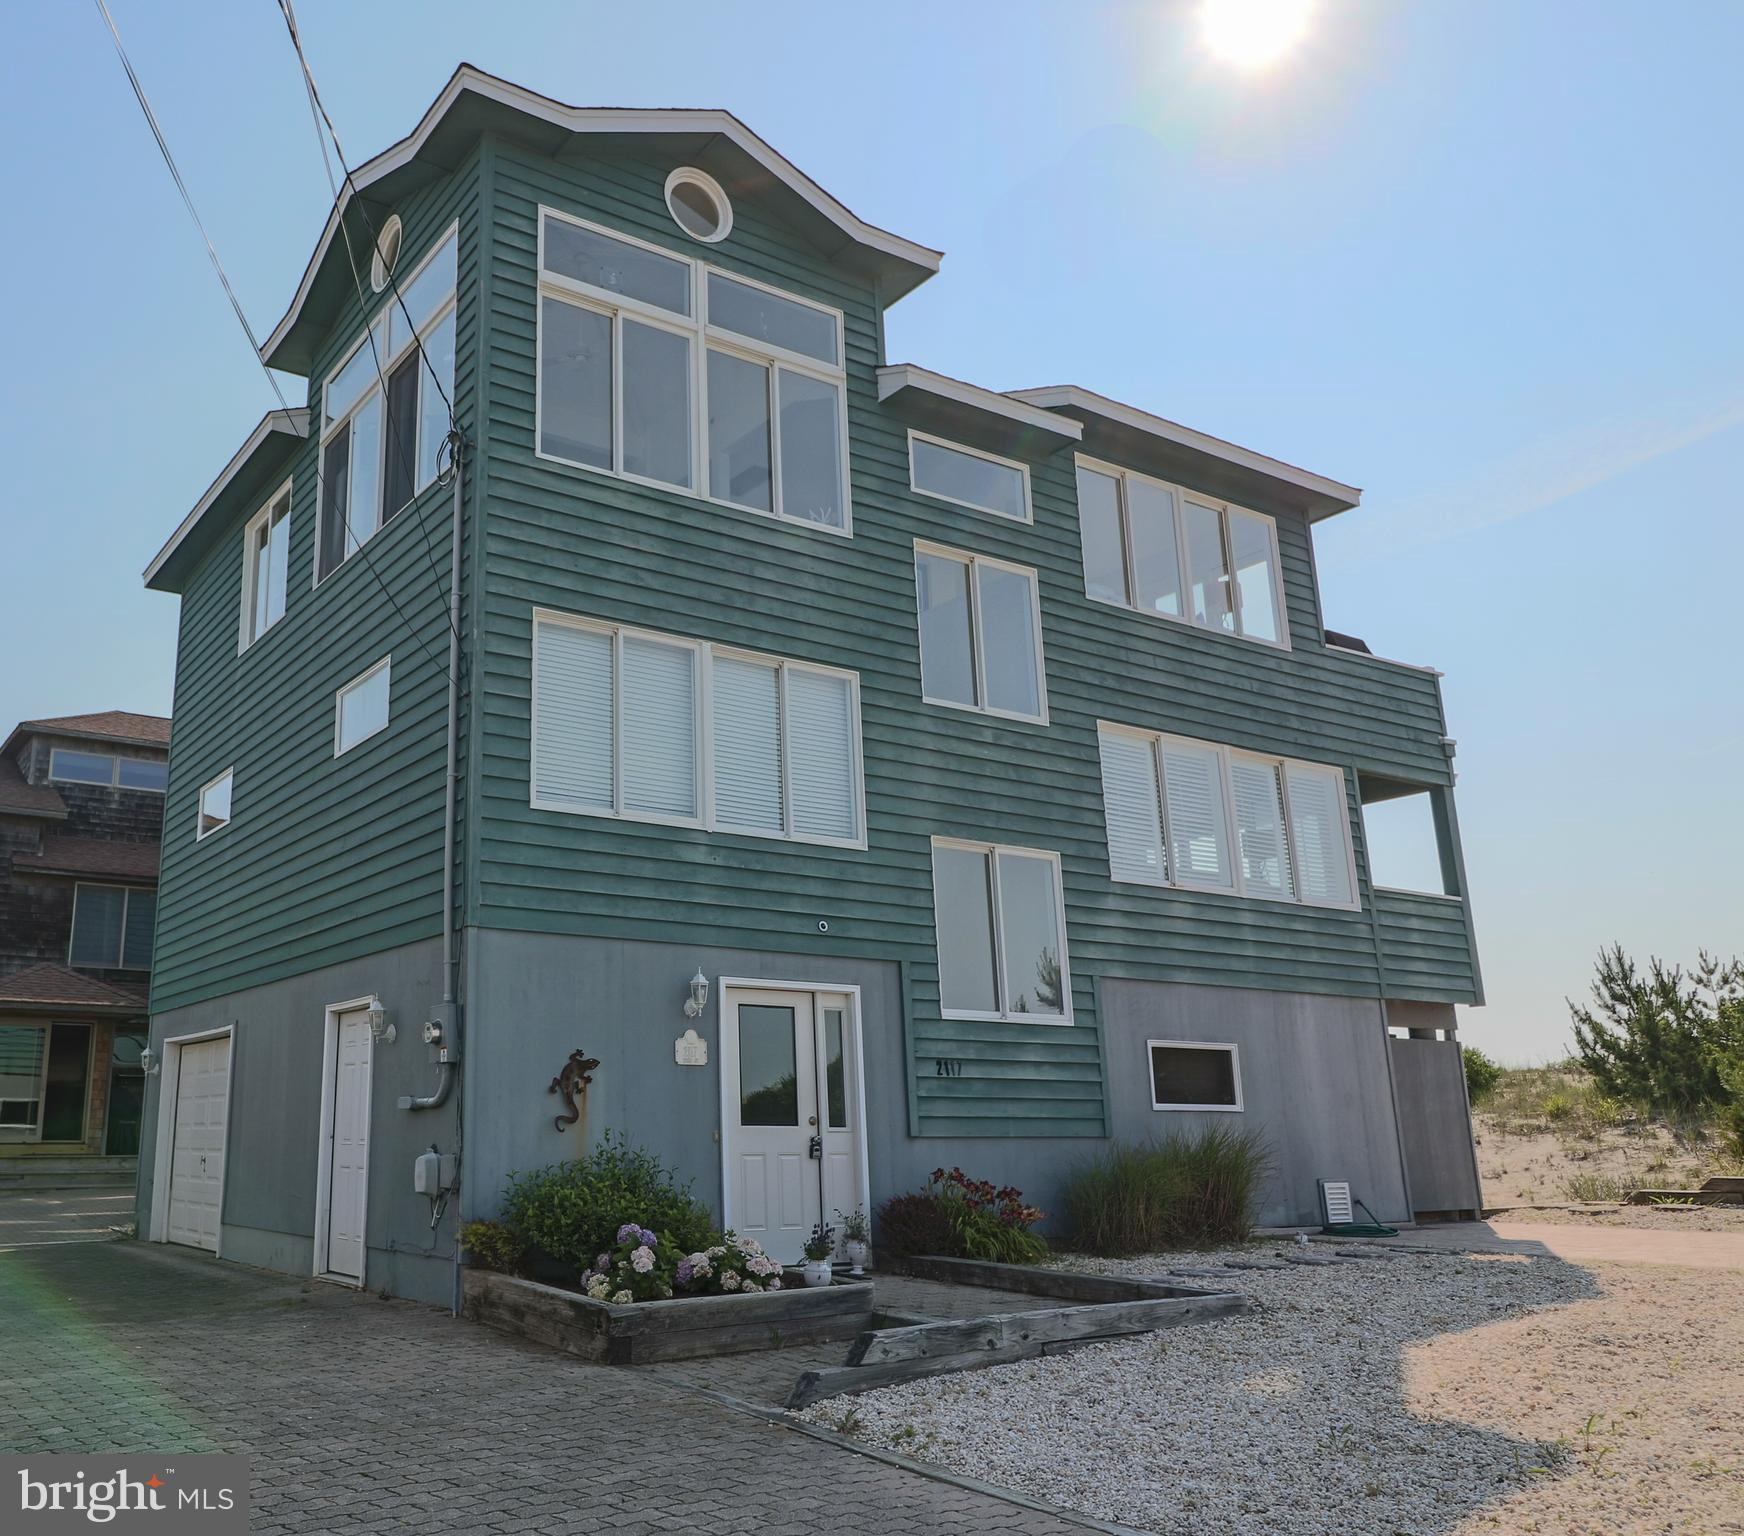 LOOK NO MORE, LBI Oceanfront! Custom built ocean front property with the most AMAZING VIEWS. Move in Ready, reversed living home, featuring 4 bedrooms, 2 full bathrooms and 2 half baths. Main living area features wrap around windows, optimizing the ocean and bay views. Kitchen has recently been updated with stainless steel appliances, granite counter tops and breakfast bar. Enjoy the morning sunrises from the master suite with sliders leading to an over size deck. First level features a second living area with FULL OCEAN VIEWS plus a spacious bedroom with ocean views and deck access. There are two additional bedrooms and a laundry room on this level. The ground level has been completely finished to entertain, providing an additional 900 sq ft of living space. So many features through out this home....newer furnace and air condition units ,central vacuum, new roof, security system, wood burning fireplace, ceiling fans and recessed lighting. Roof top deck was built to support a hot tub, electric  is in place.  Attached 10 X 10 storage area.